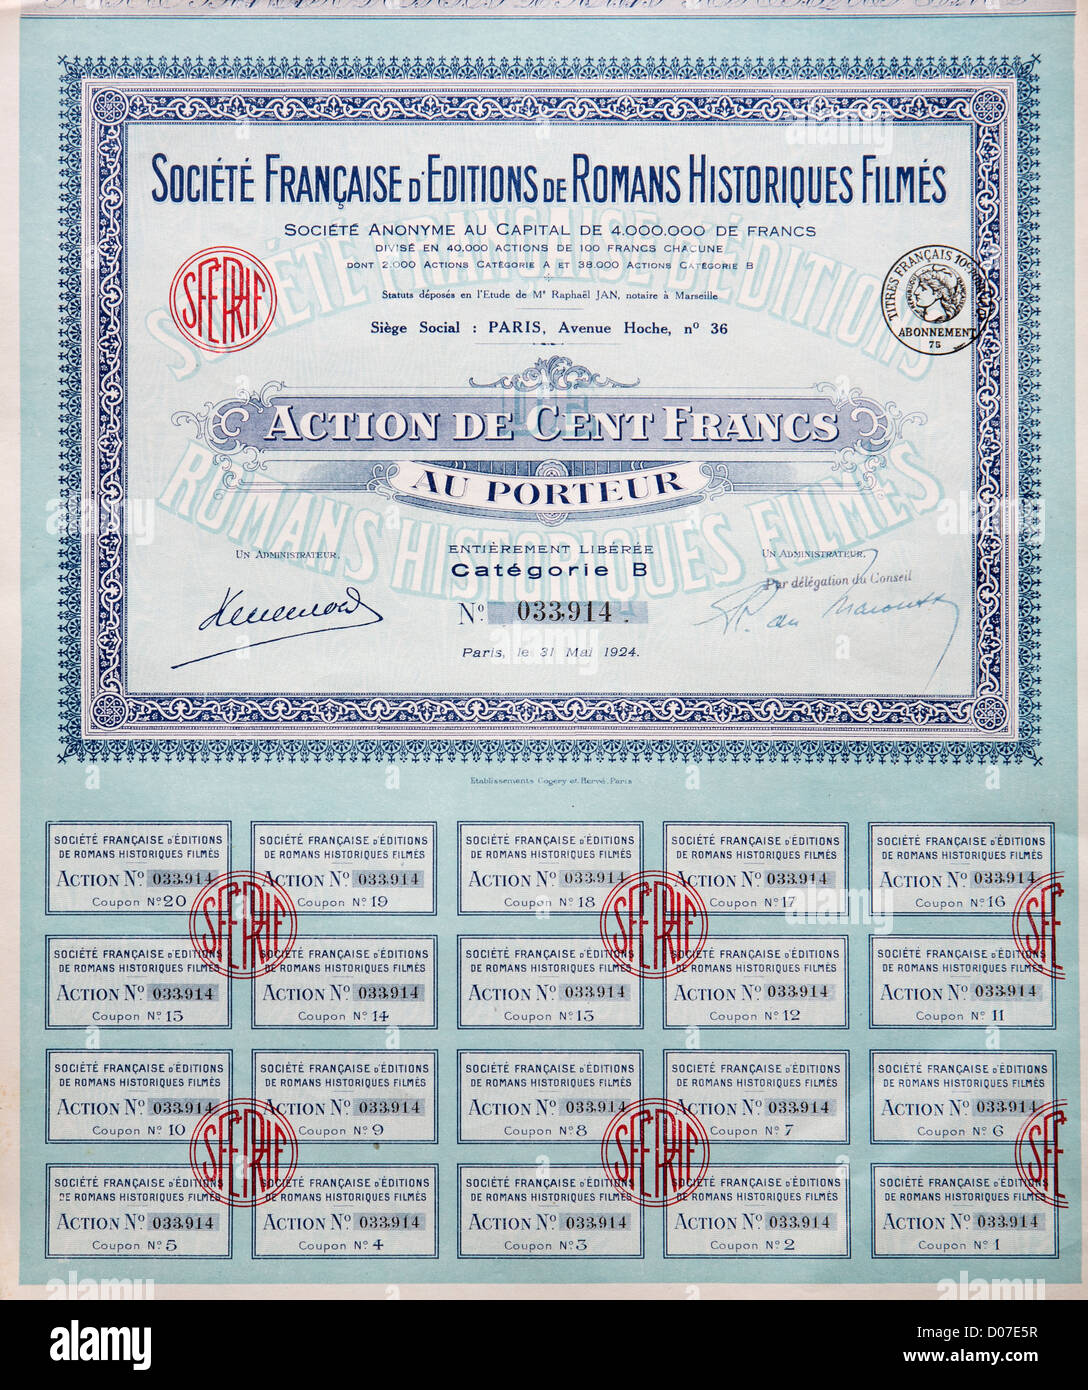 ONE HUNDRED EURO STOCKS FROM 1924 IN COMPANY FRANCAISE D'EDITIONS DE ROMANS HISTORIQUES FILMES CHATEAU DE MAINTENON - Stock Image